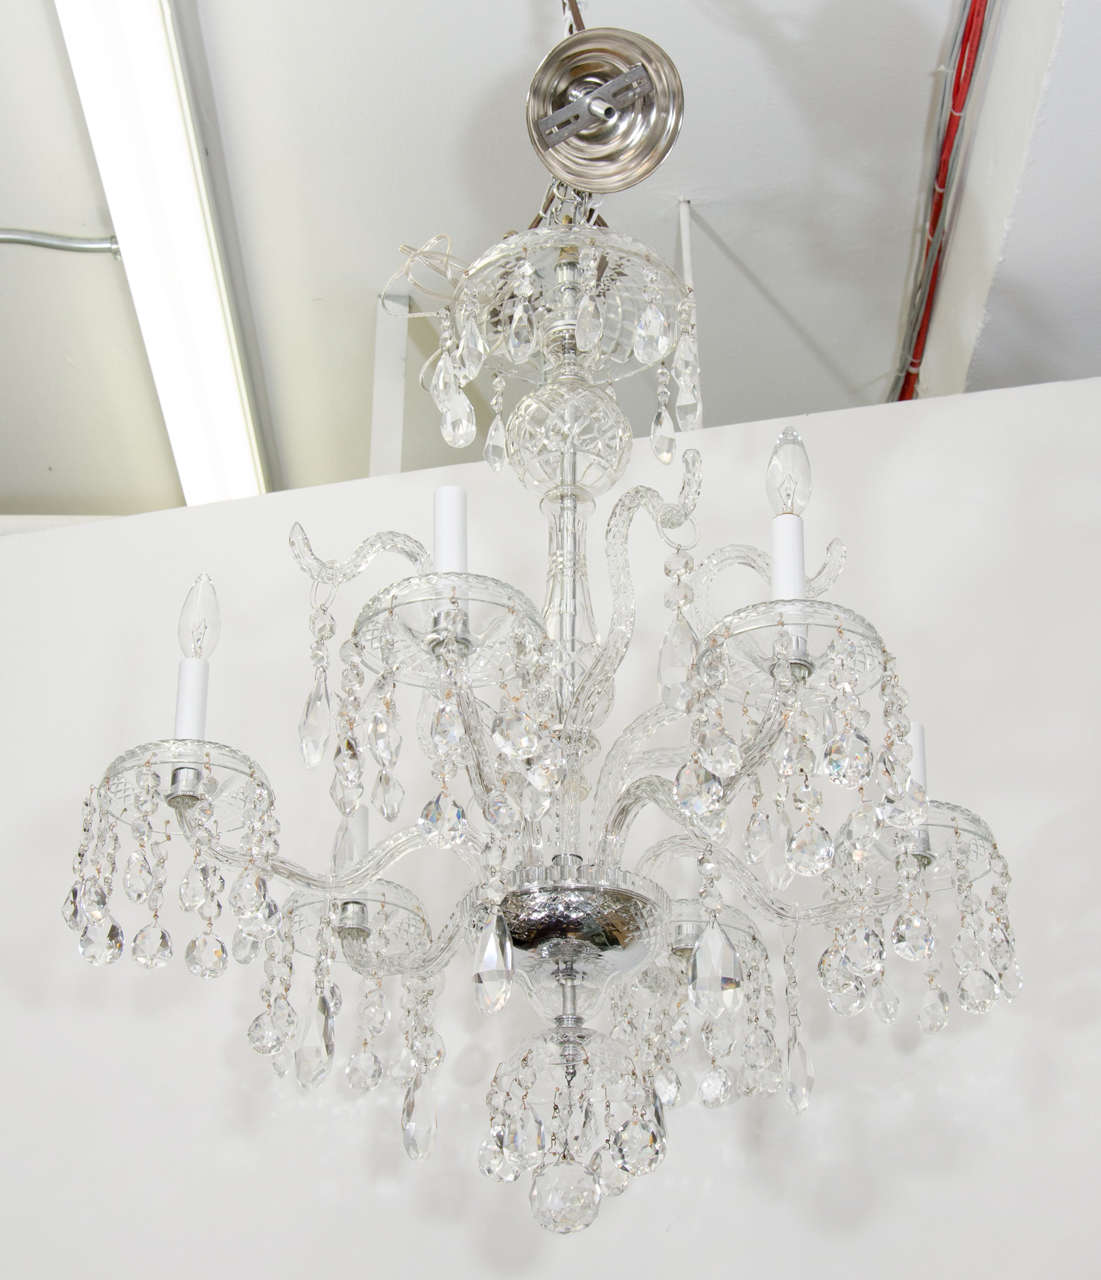 A S SixLight Drop Crystal Chandelier For Sale At Stdibs - Chandelier drop crystals